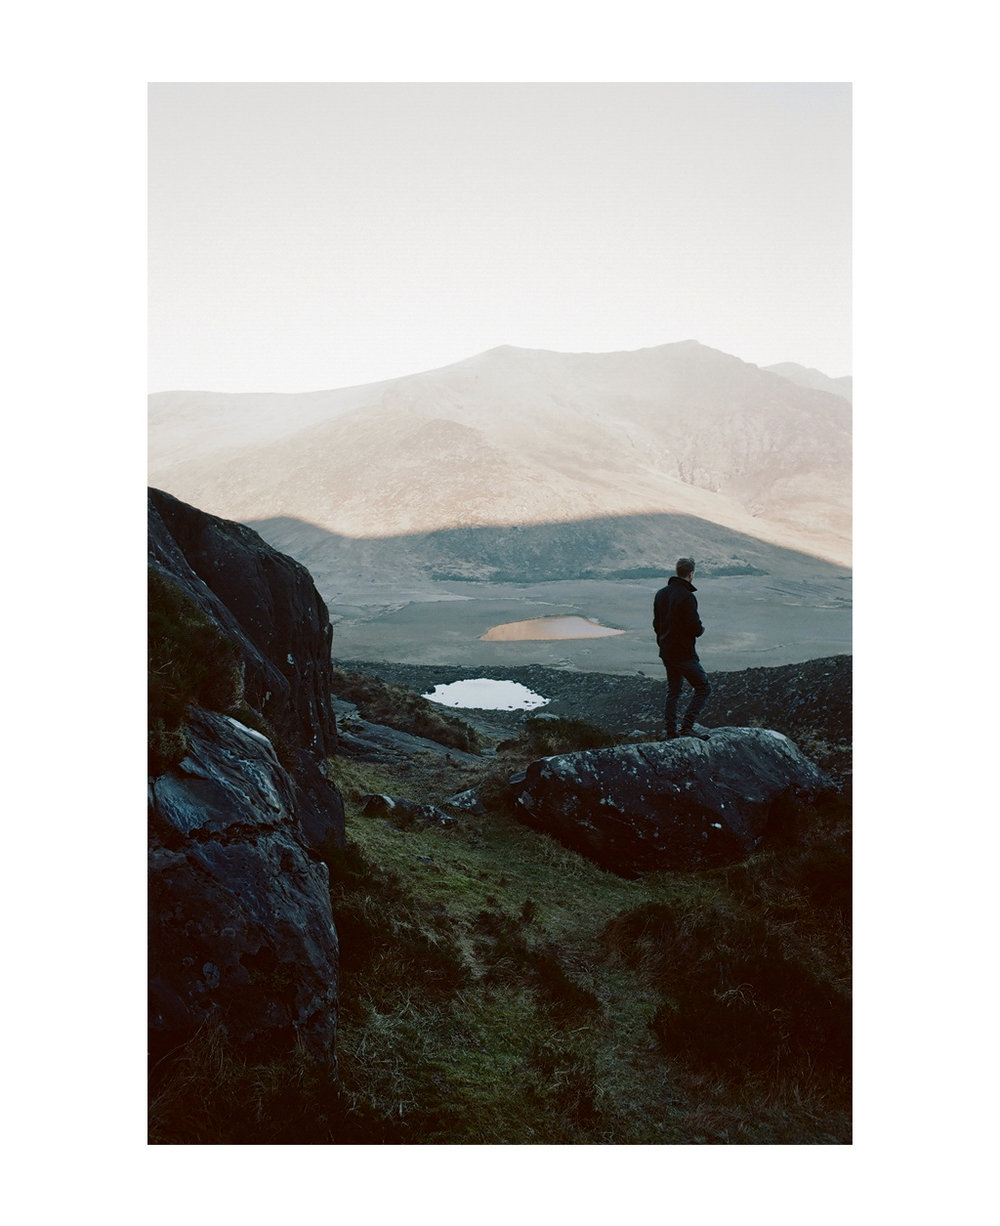 James at Conor Pass, Ireland.